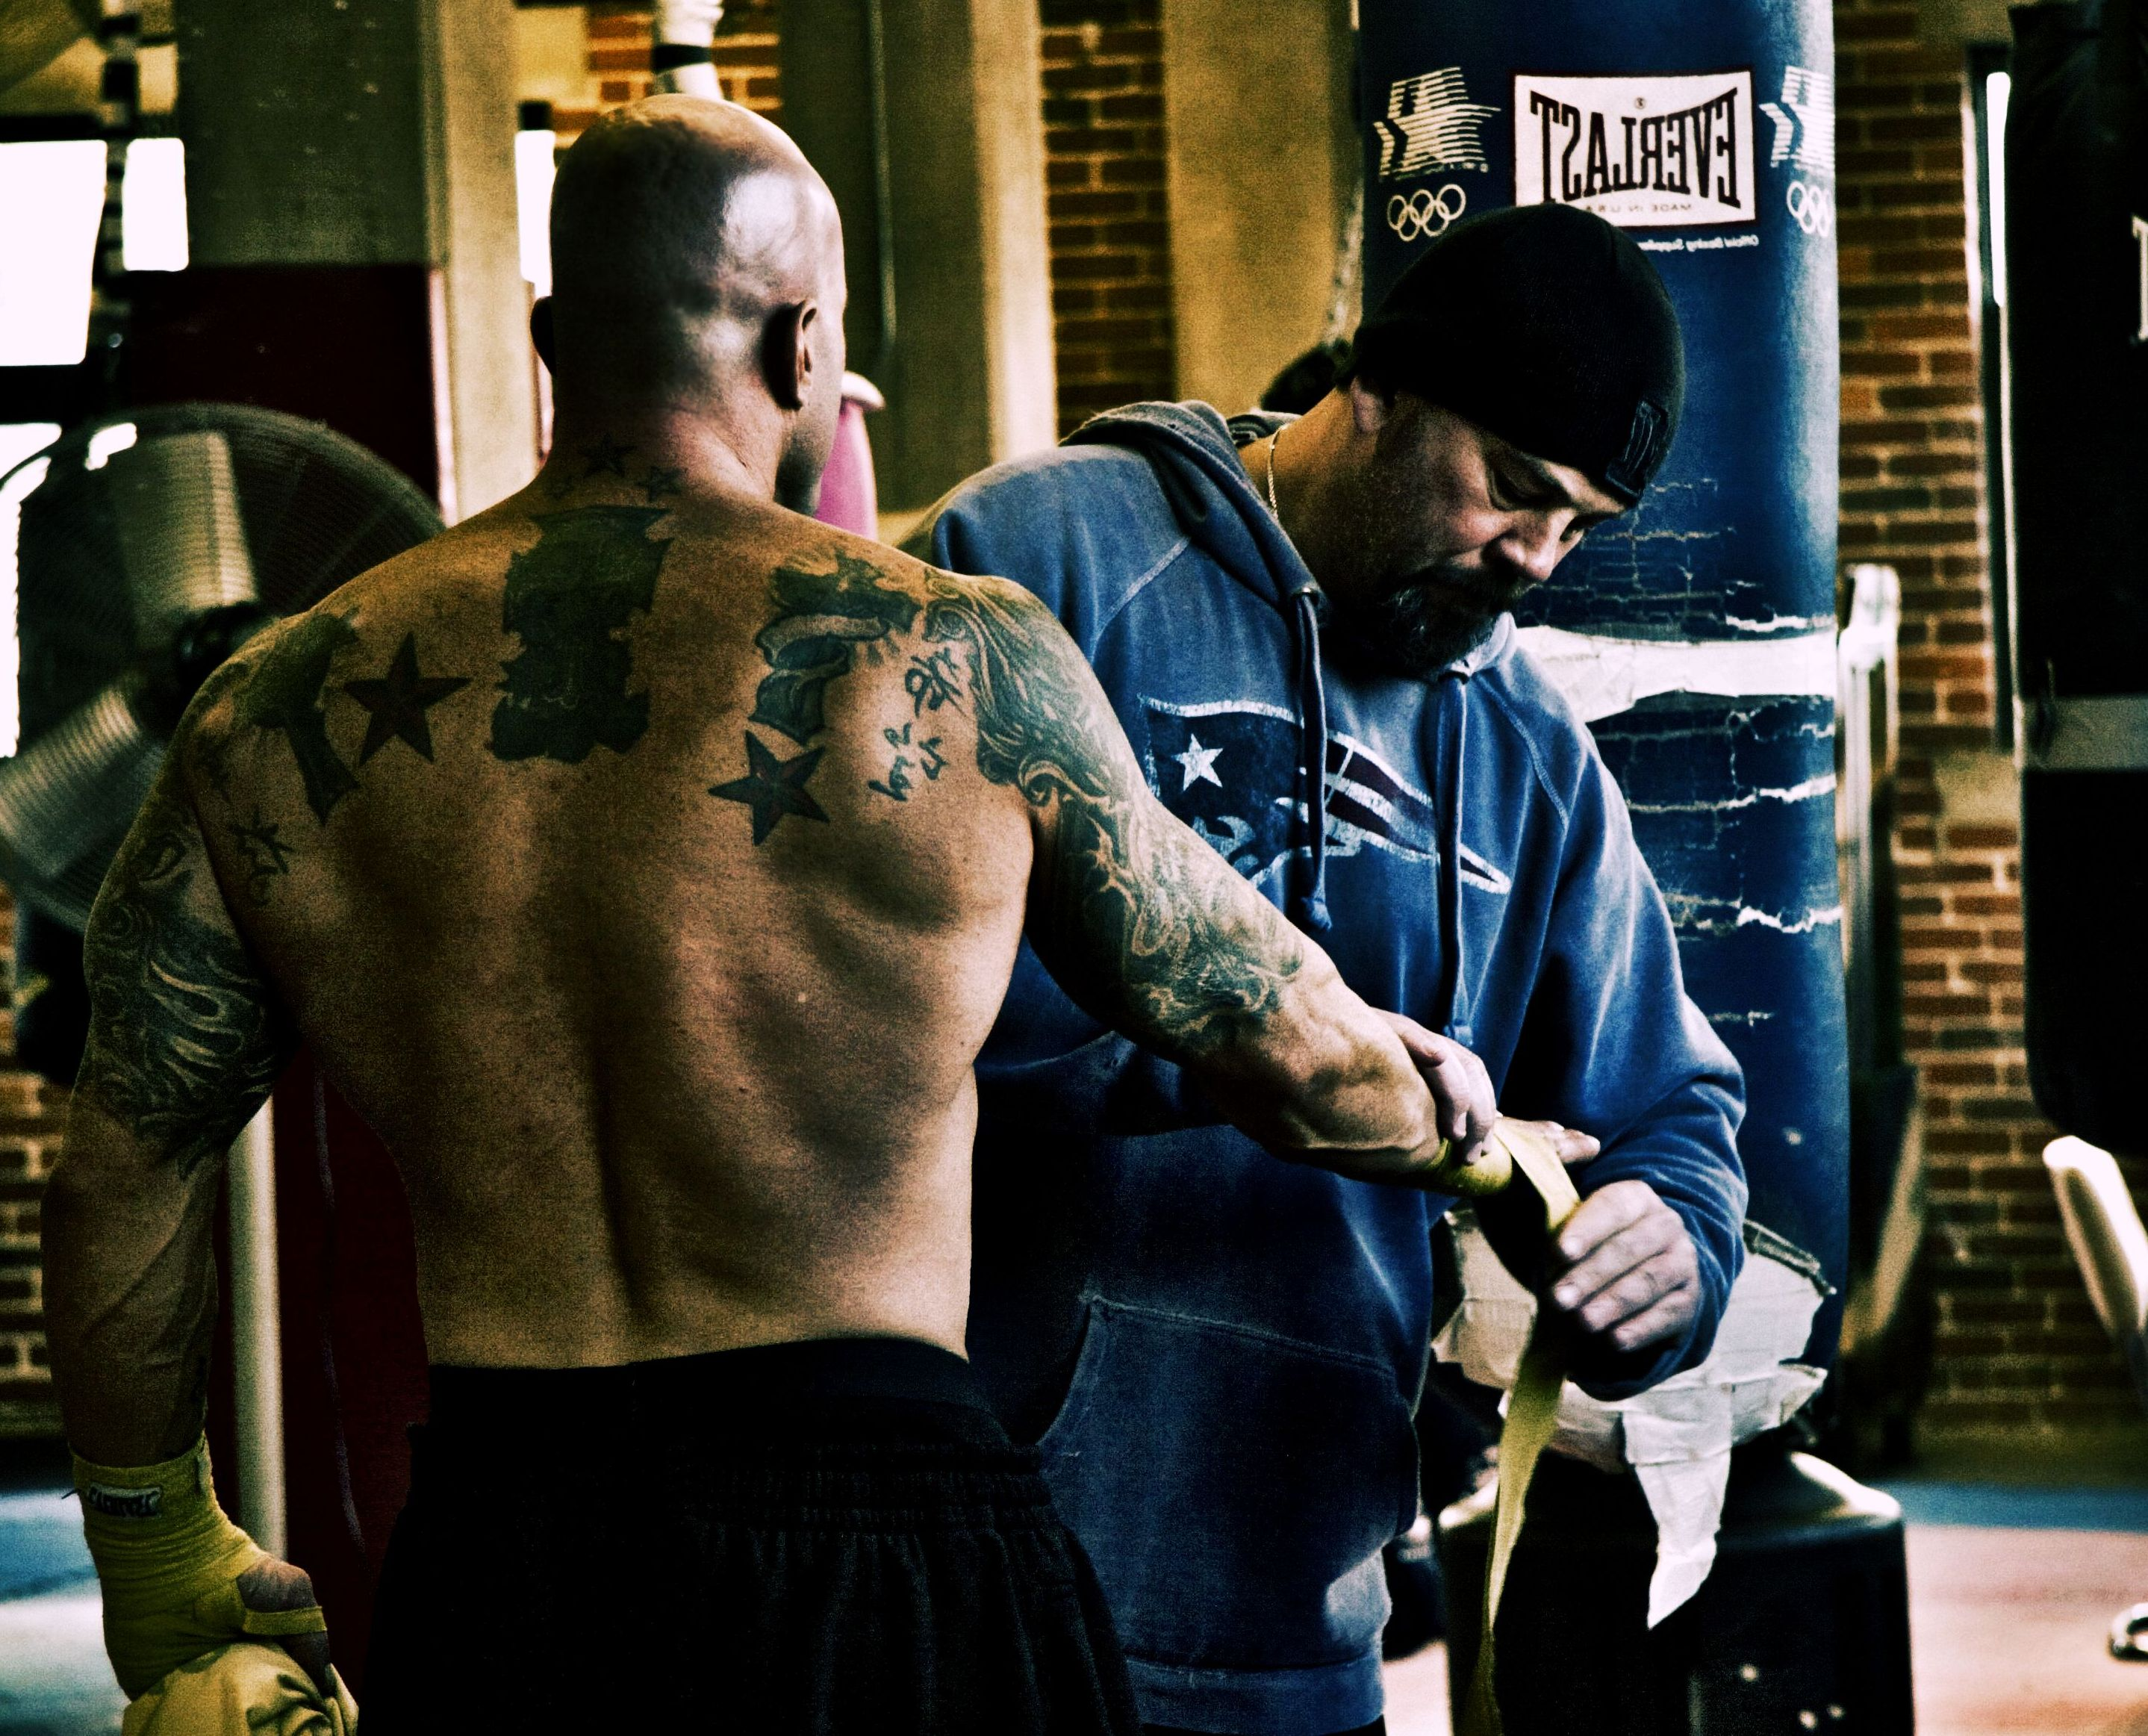 Actor & Model John Joseph Quinlan Boston Film Series Project Cruiser Weight Champion of the World On Set @ Dullea's Boxing Club 2015 #JohnQuinlan